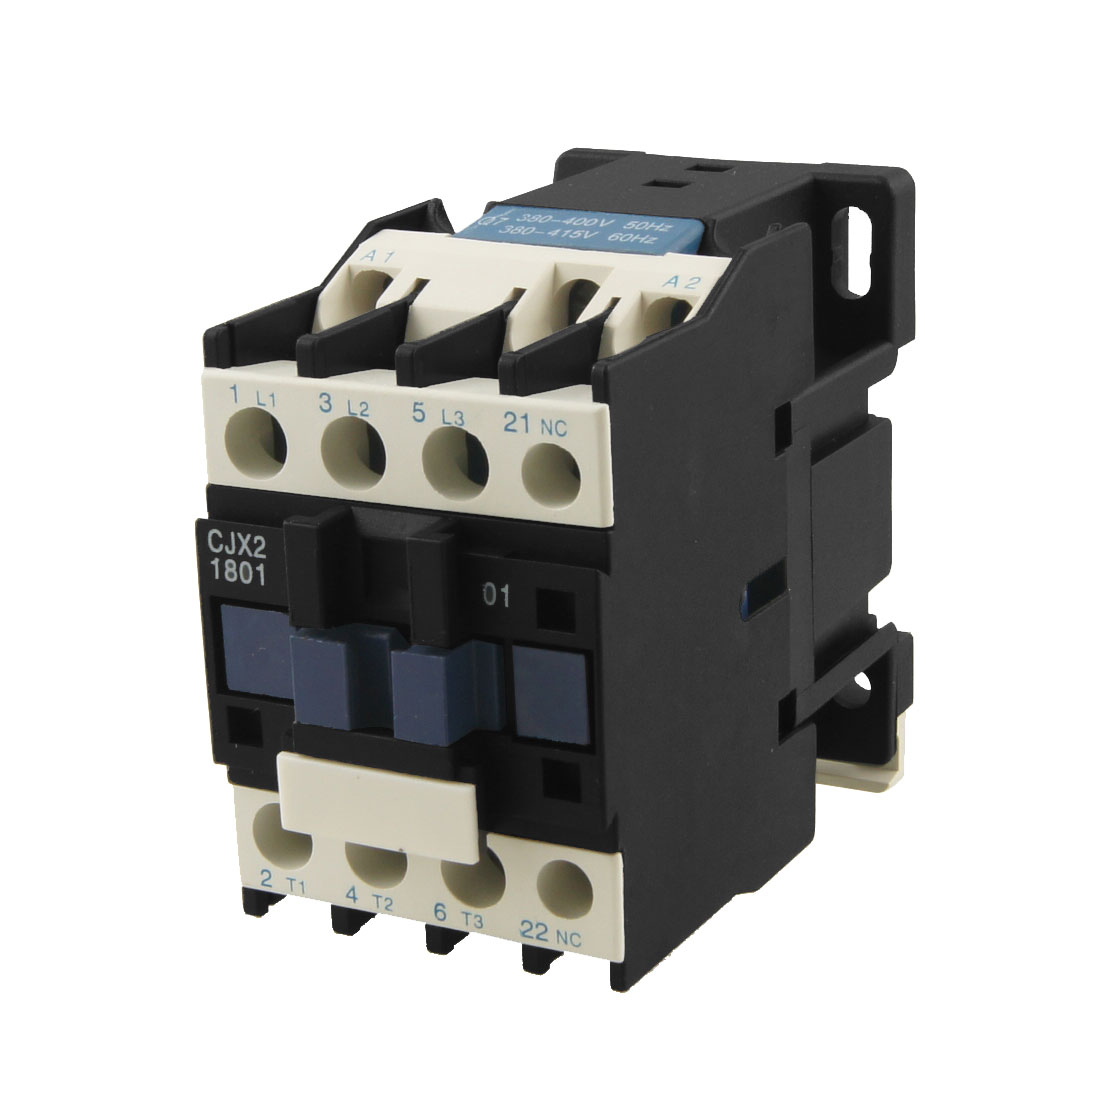 CJX2-1801 AC Contactor 18A 3 Phase 3-Pole NC 380V 50/60Hz Coil